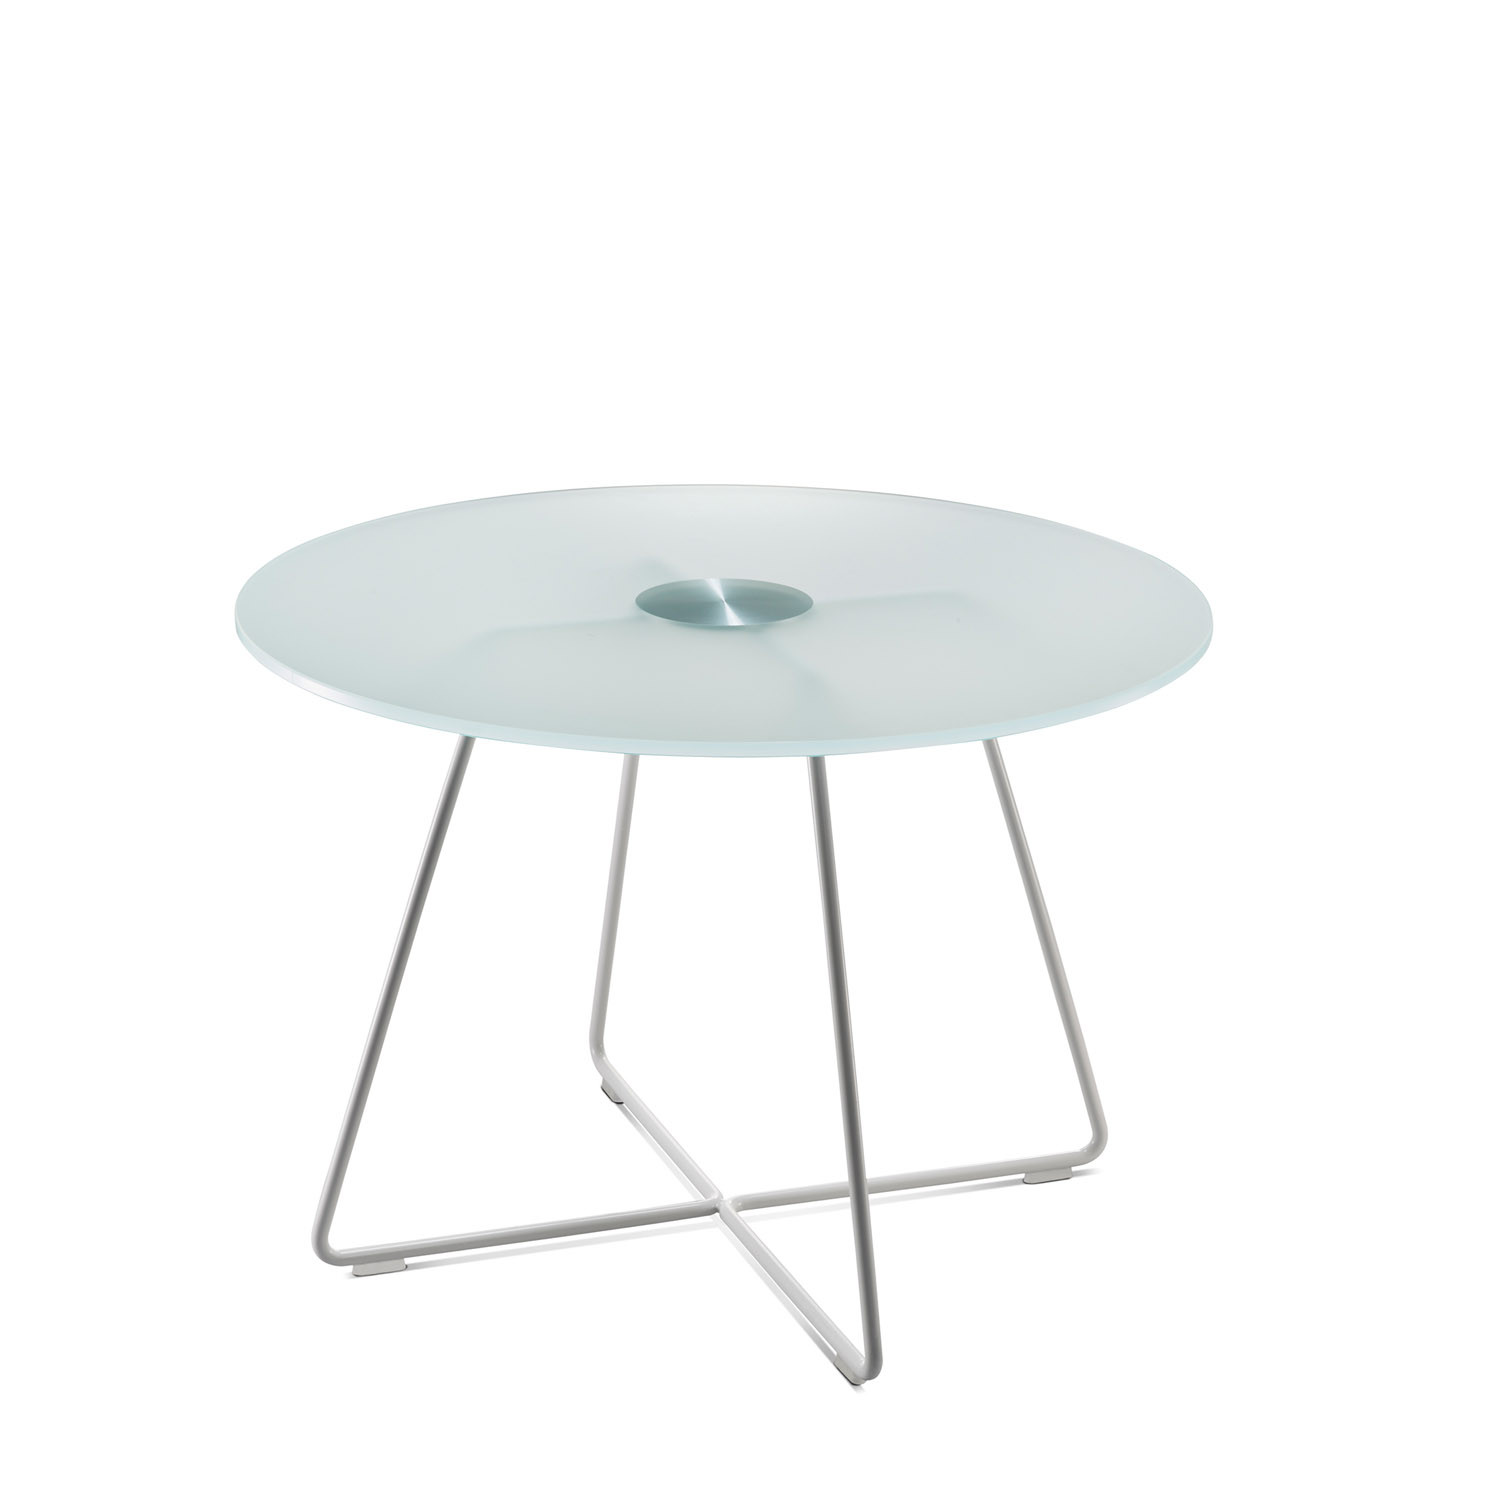 Swoosh Round Glass Table with Wire Base